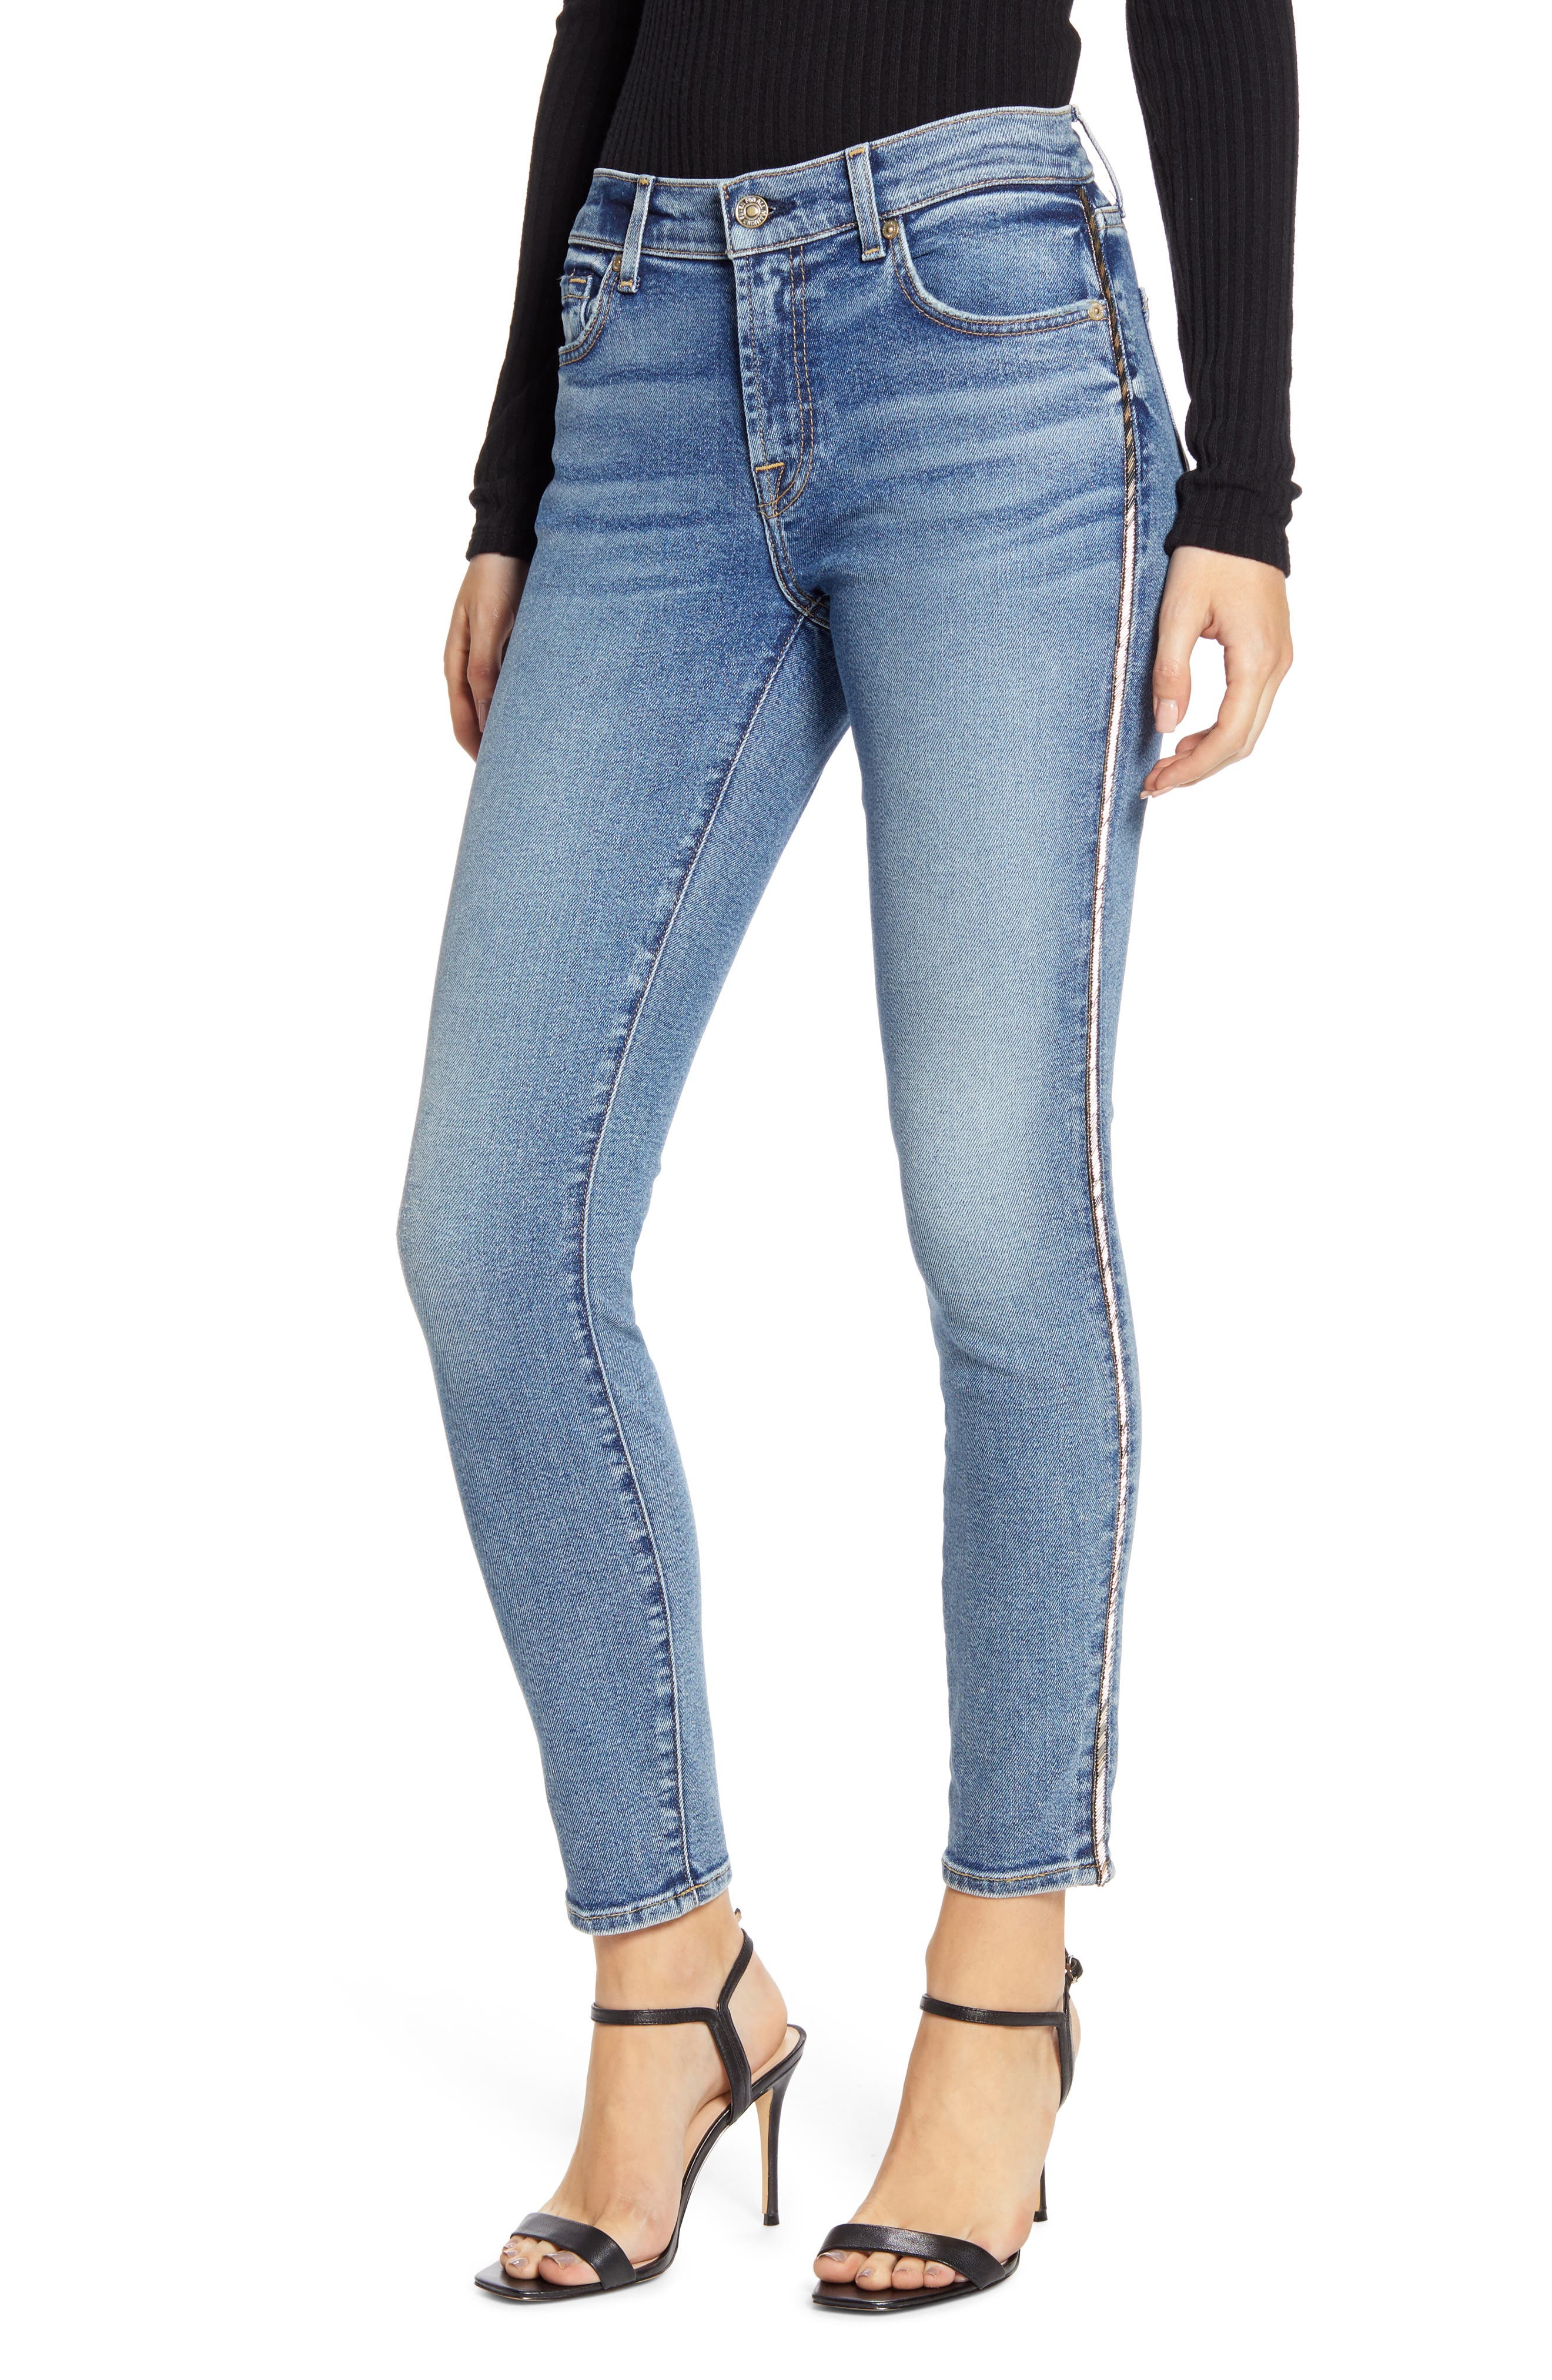 7 For All Mankind Metallic Chevron Sides Ankle Skinny Jeans Nordstrom Rack